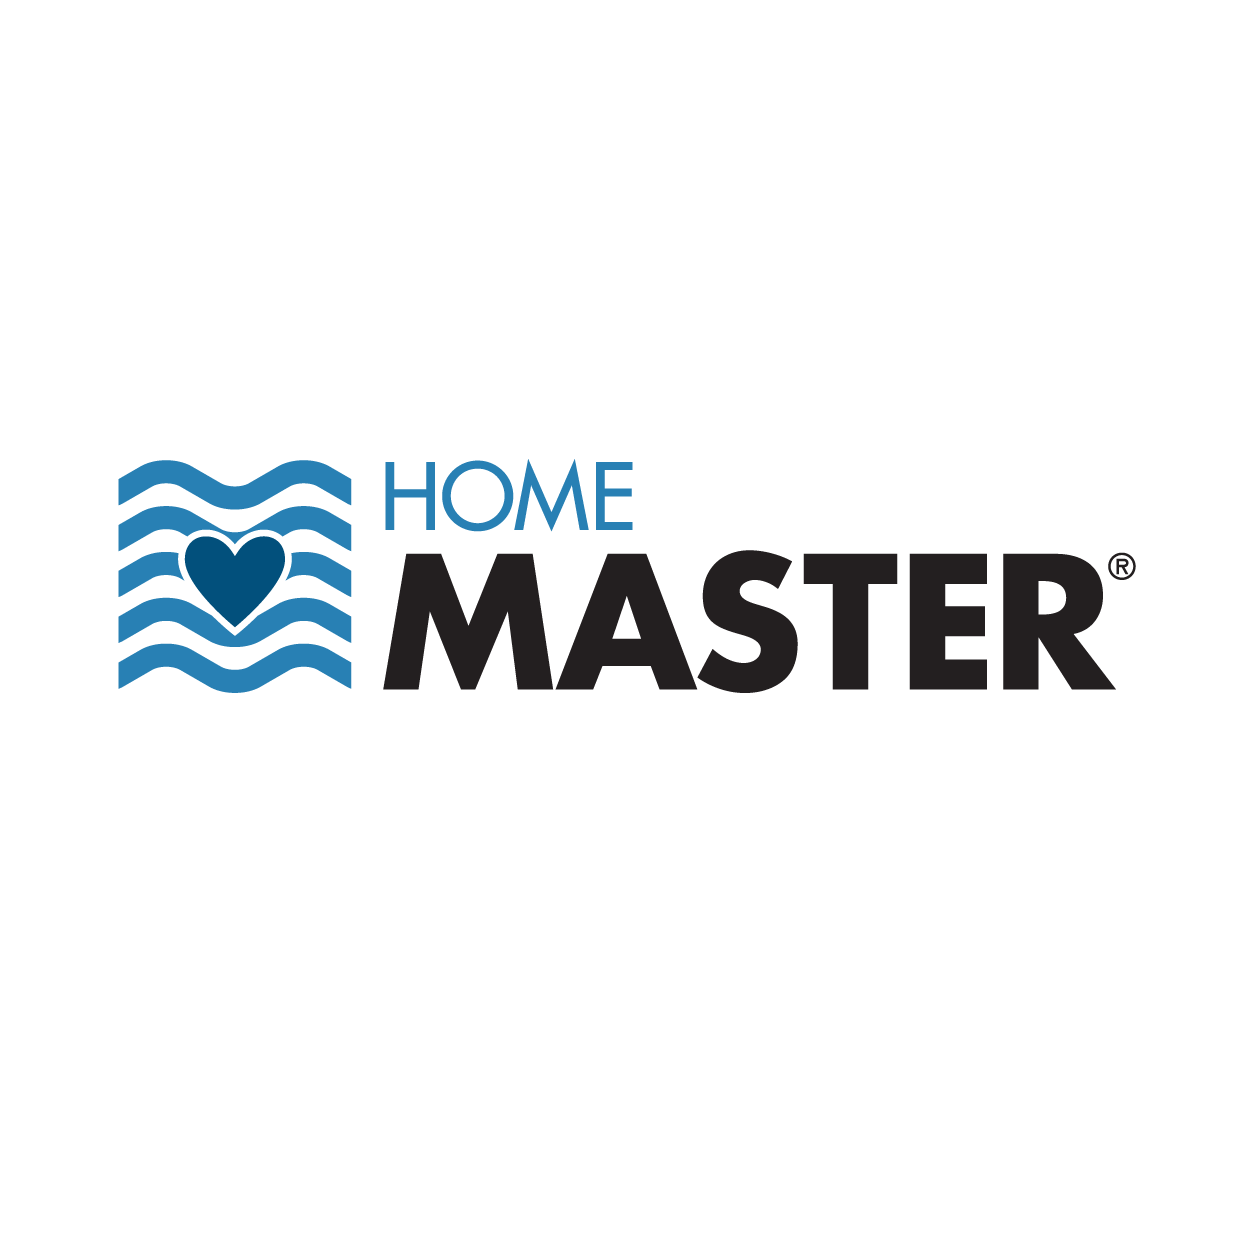 Home Master Charity Foundation